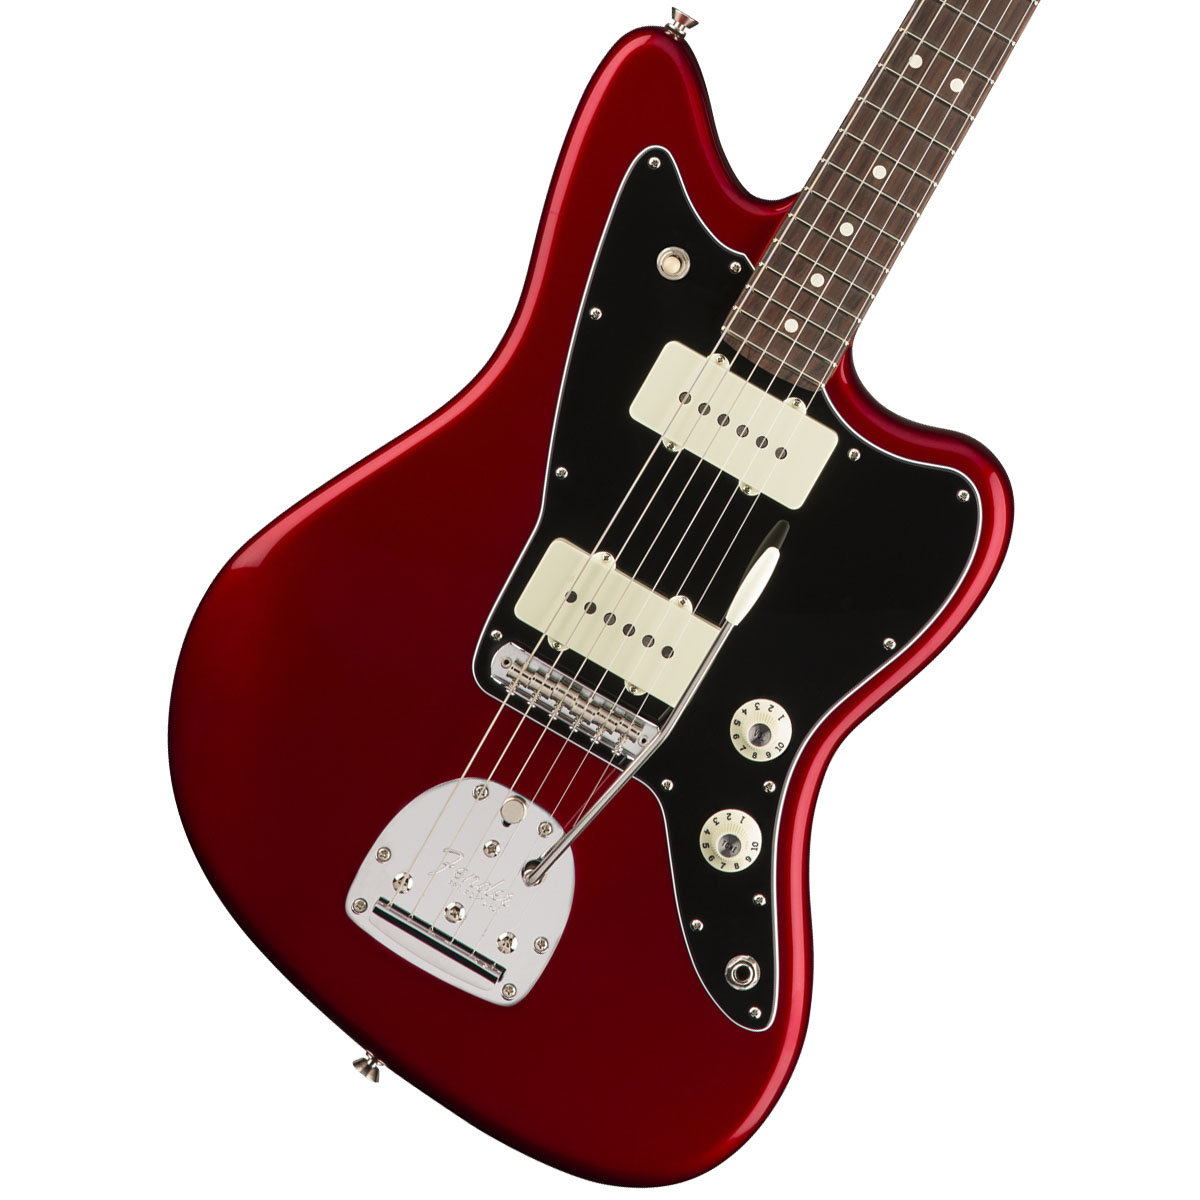 Fender USA / American Professional Jazzmaster Rosewood Fingerboard Candy Apple Red 【お取り寄せ商品】《カスタムショップのお手入れ用品を進呈/+671038200》